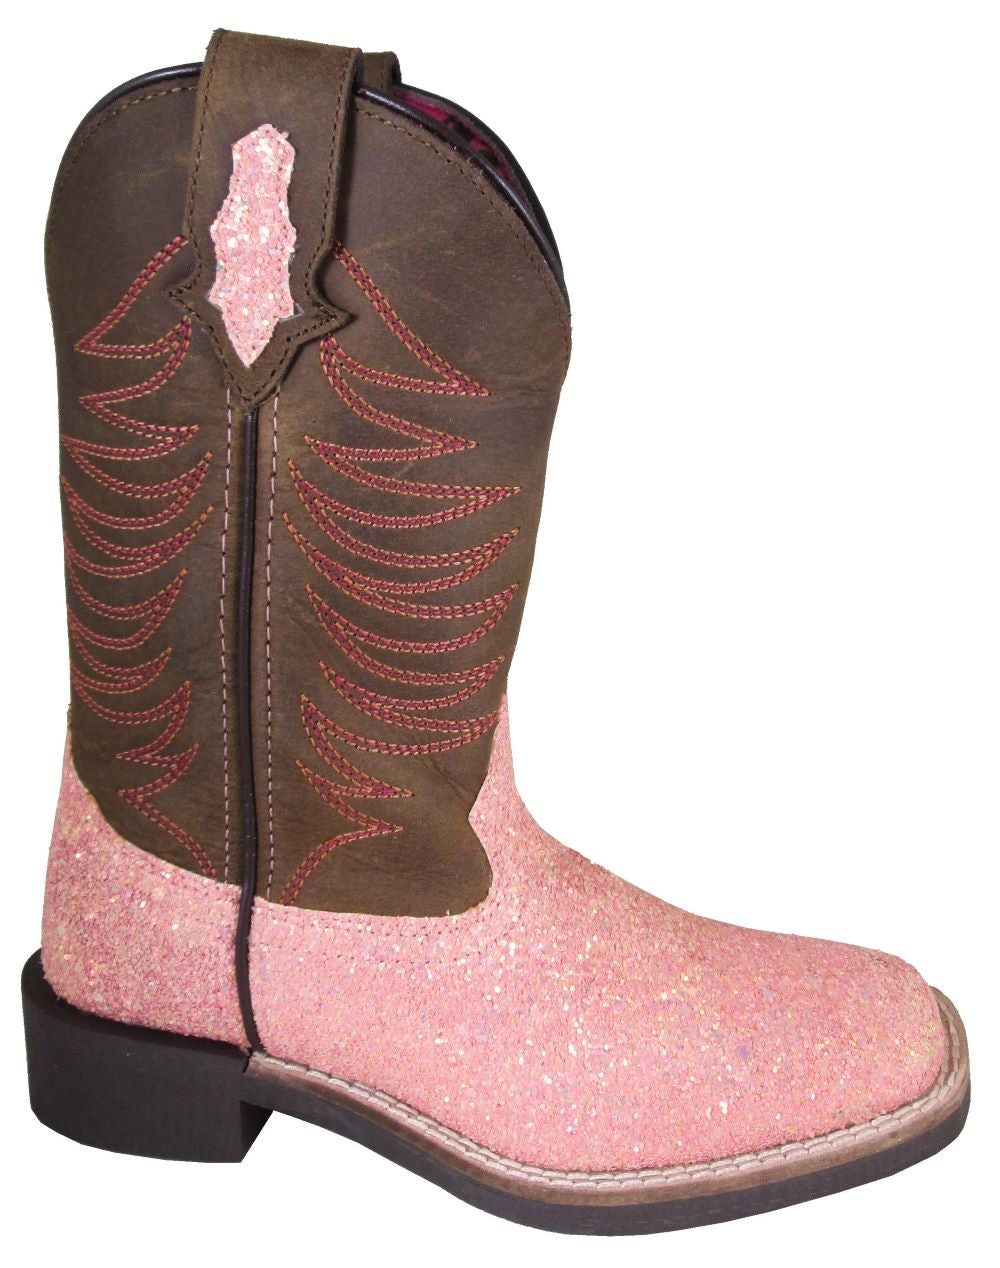 'Smoky Mountain' Children's Ariel Western Square Toe - Pink Glitter / Crazy Horse